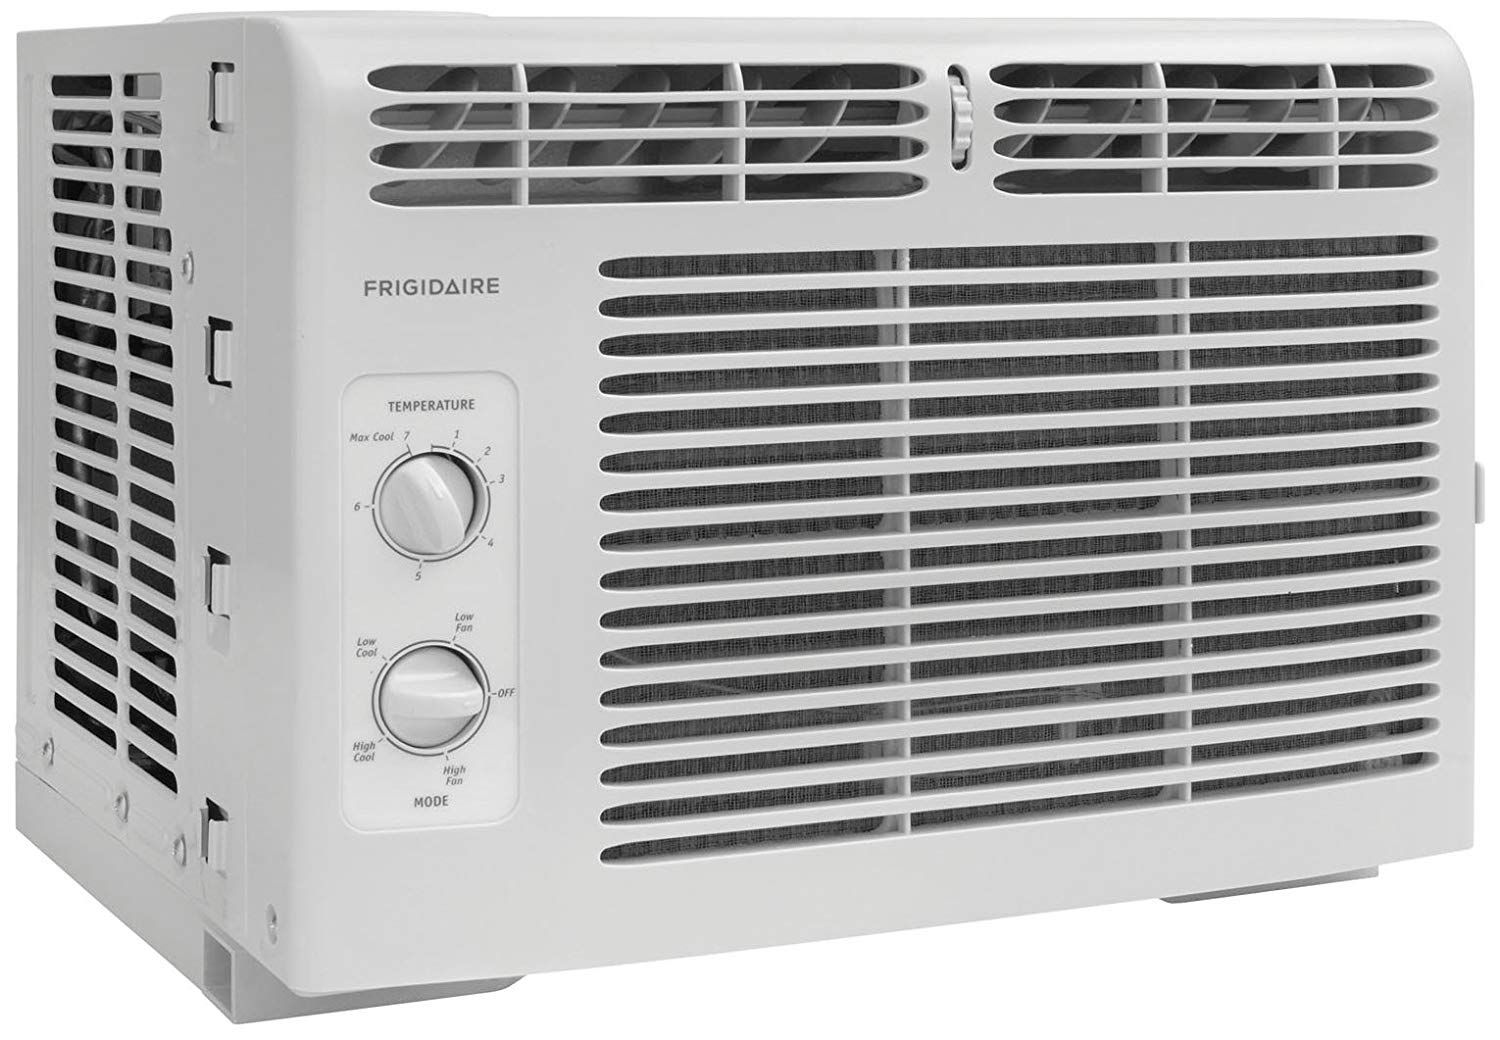 Frigidaire Ffra0511r1e 5 000 Btu 115v Window Mounted Mini Compact Air Conditioner Compact Air Conditioner Best Window Air Conditioner Smallest Air Conditioner